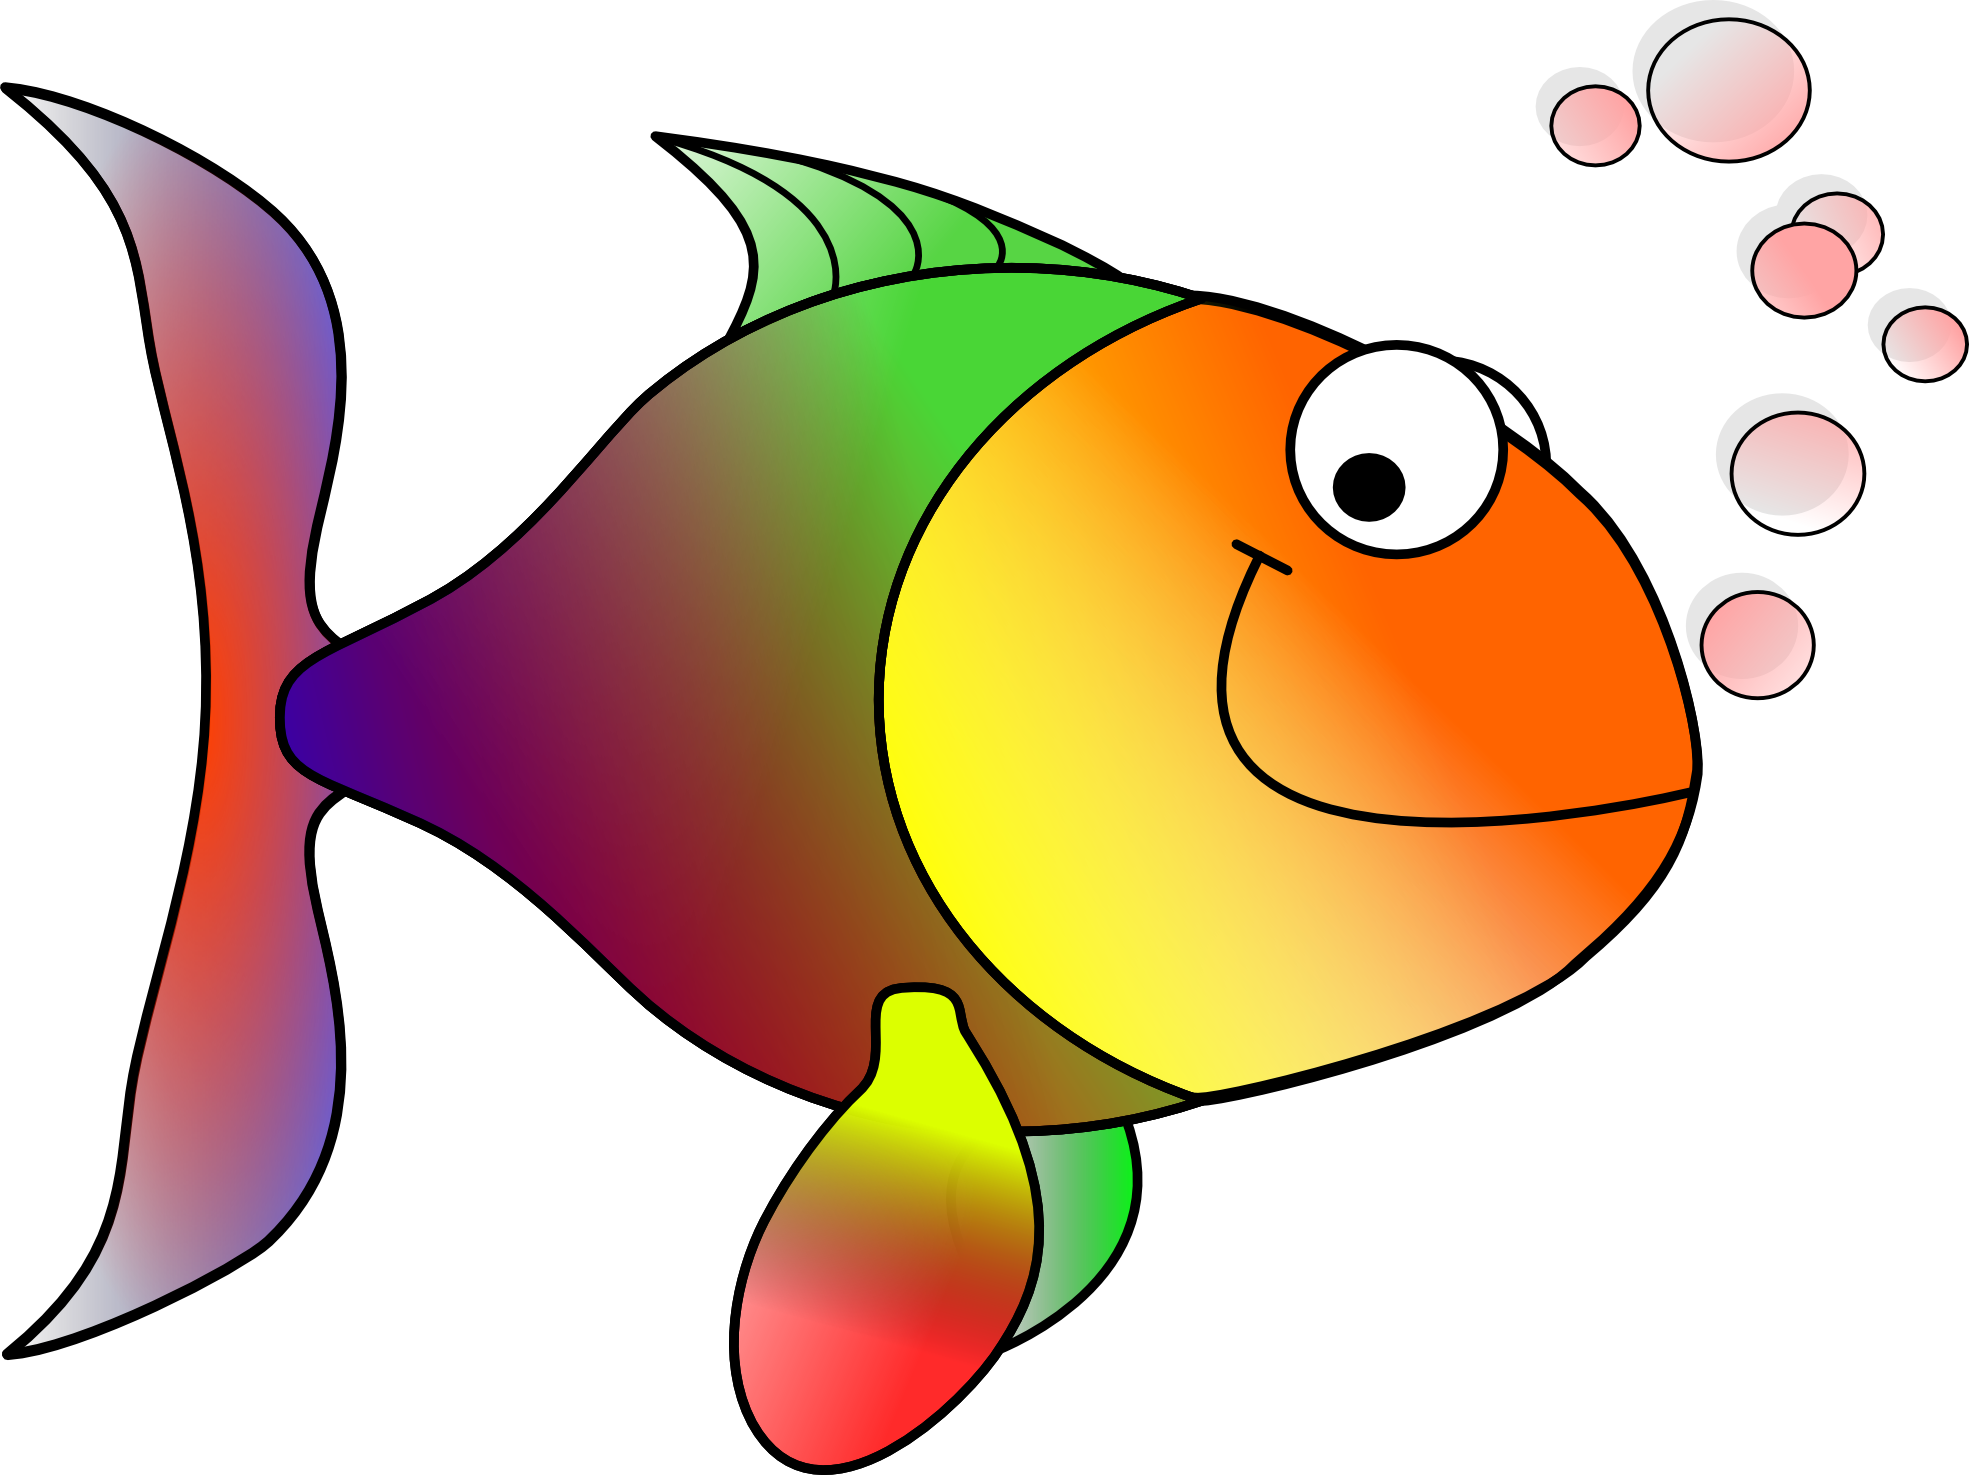 Clipart Of Fish, Contract And Fishing.